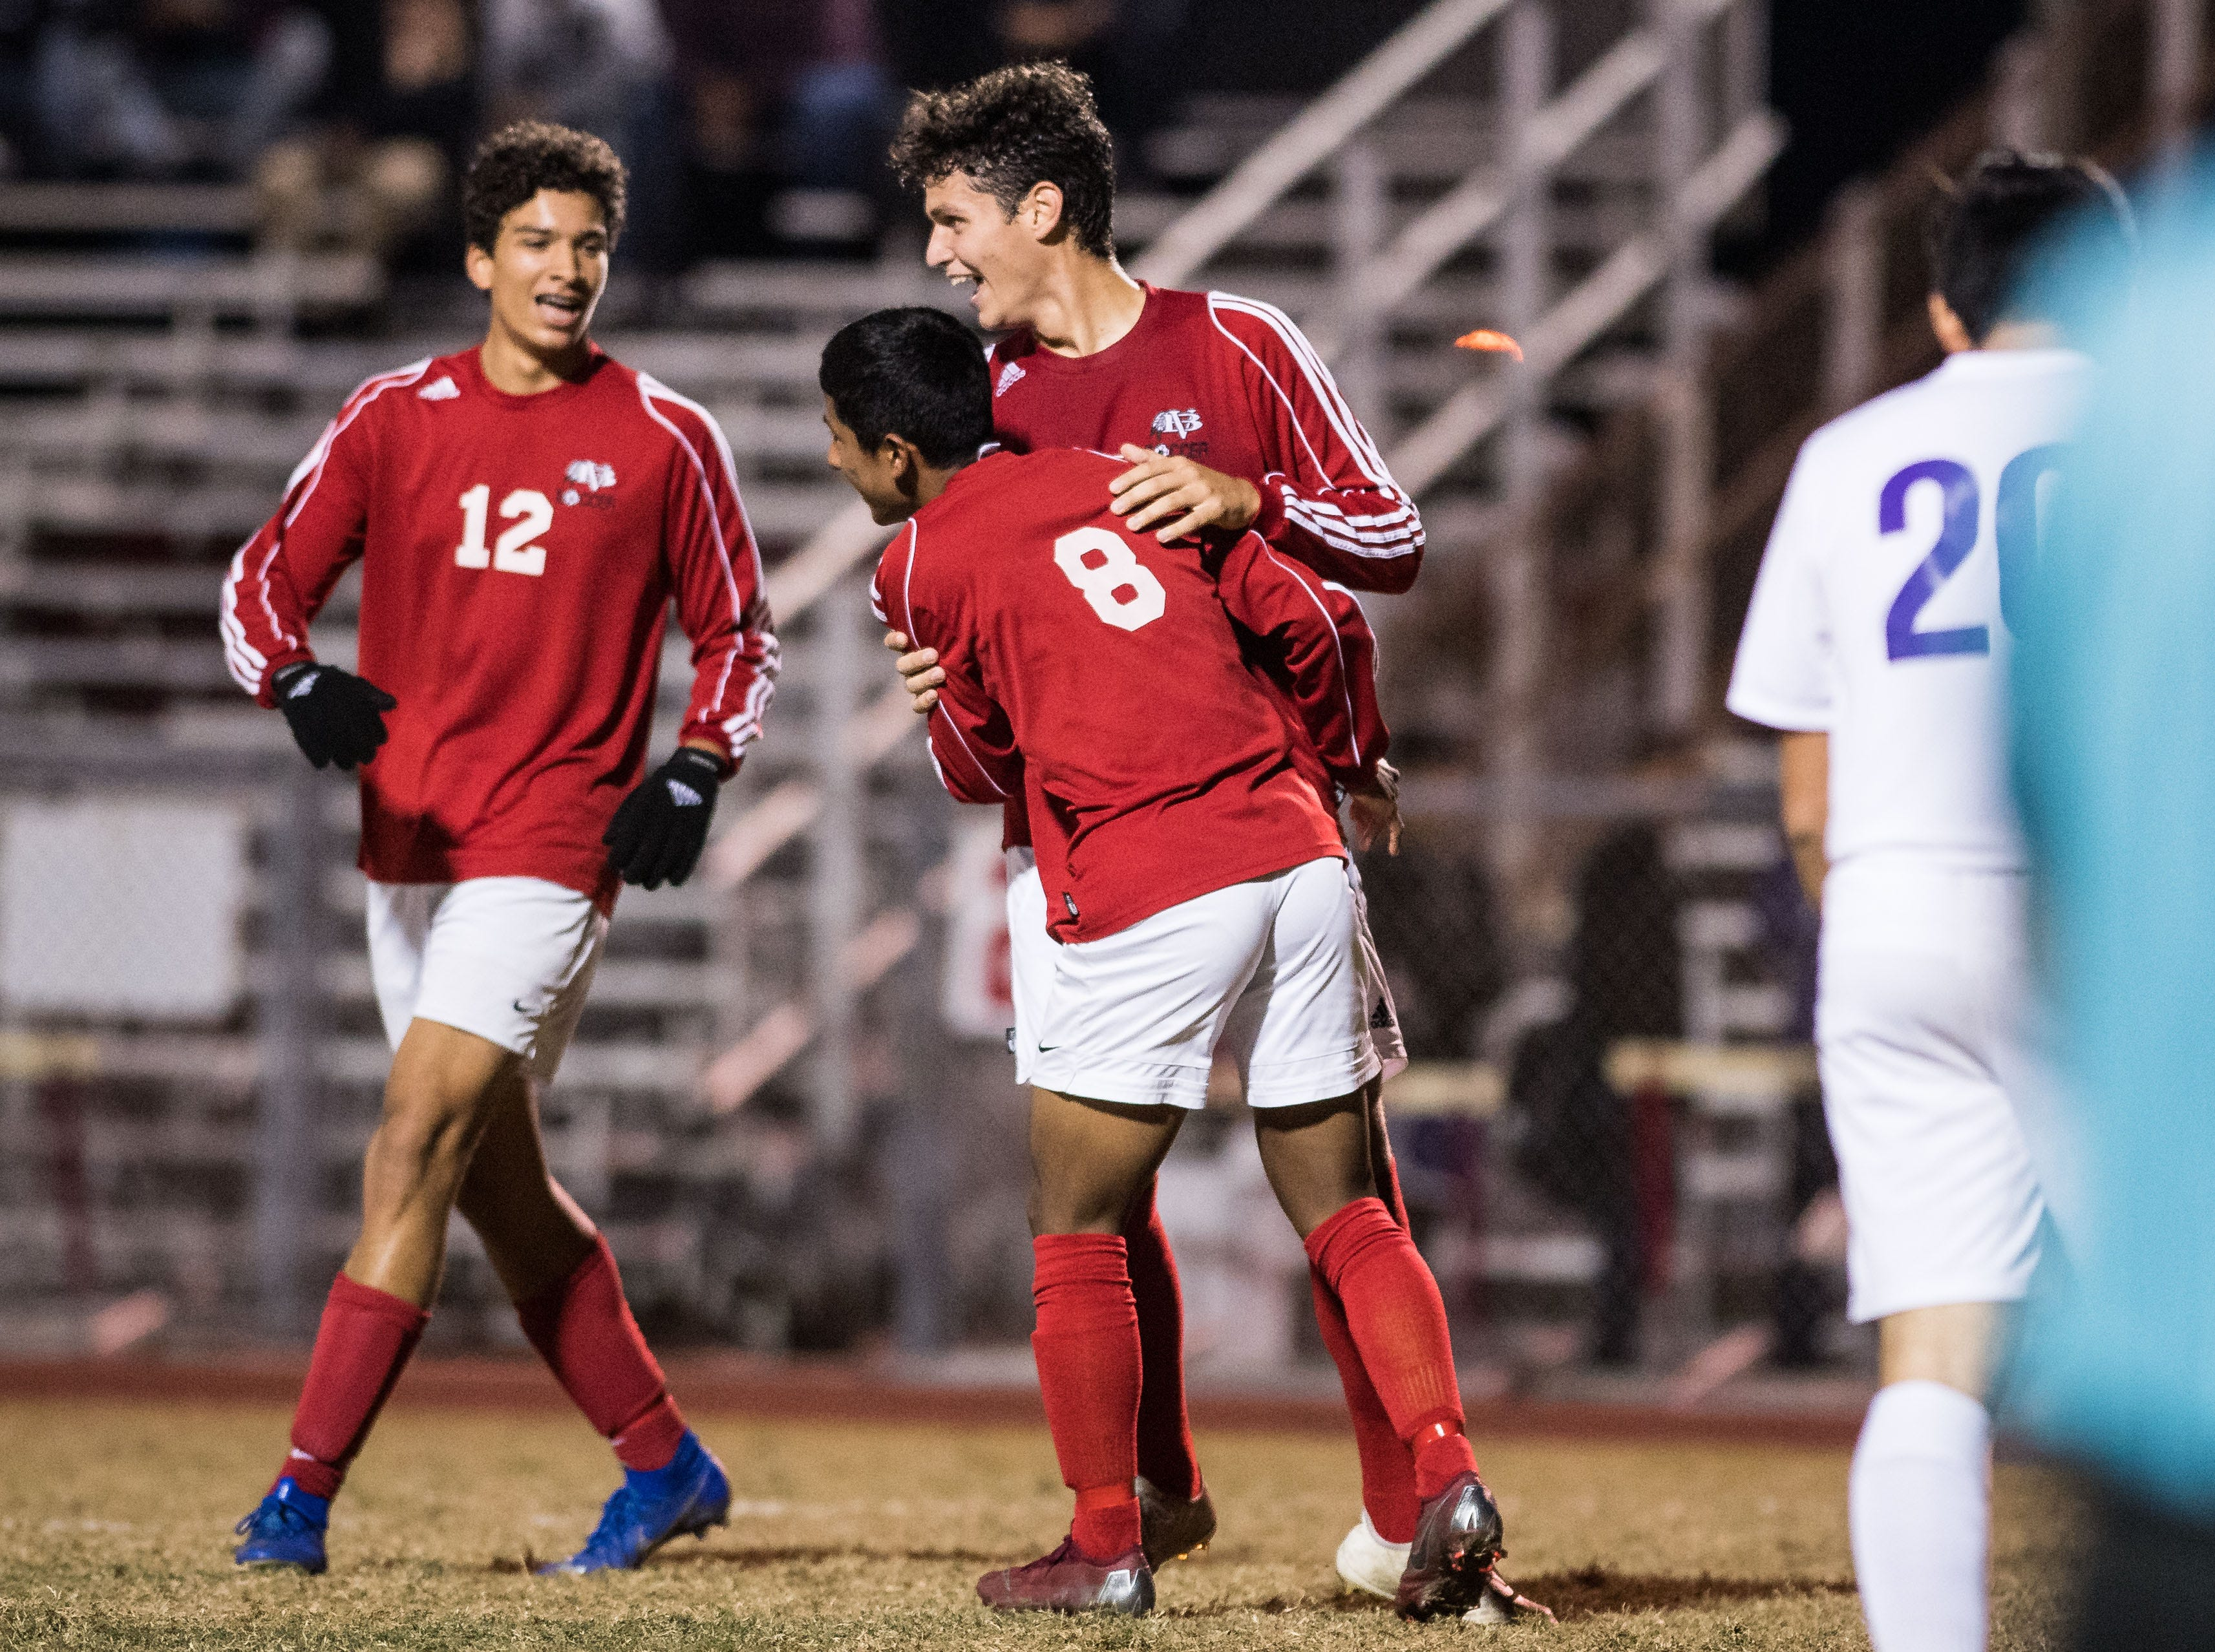 Vero Beach's Marcos Carmona (8) is congratulated by Rodrigo Caldas, as teammate Gabriel Espinosa approaches at left, after scoring the team's second goal against Okeechobee during the  first half of the high school boys soccer game Friday, Jan. 18, 2019, at Vero Beach High School.